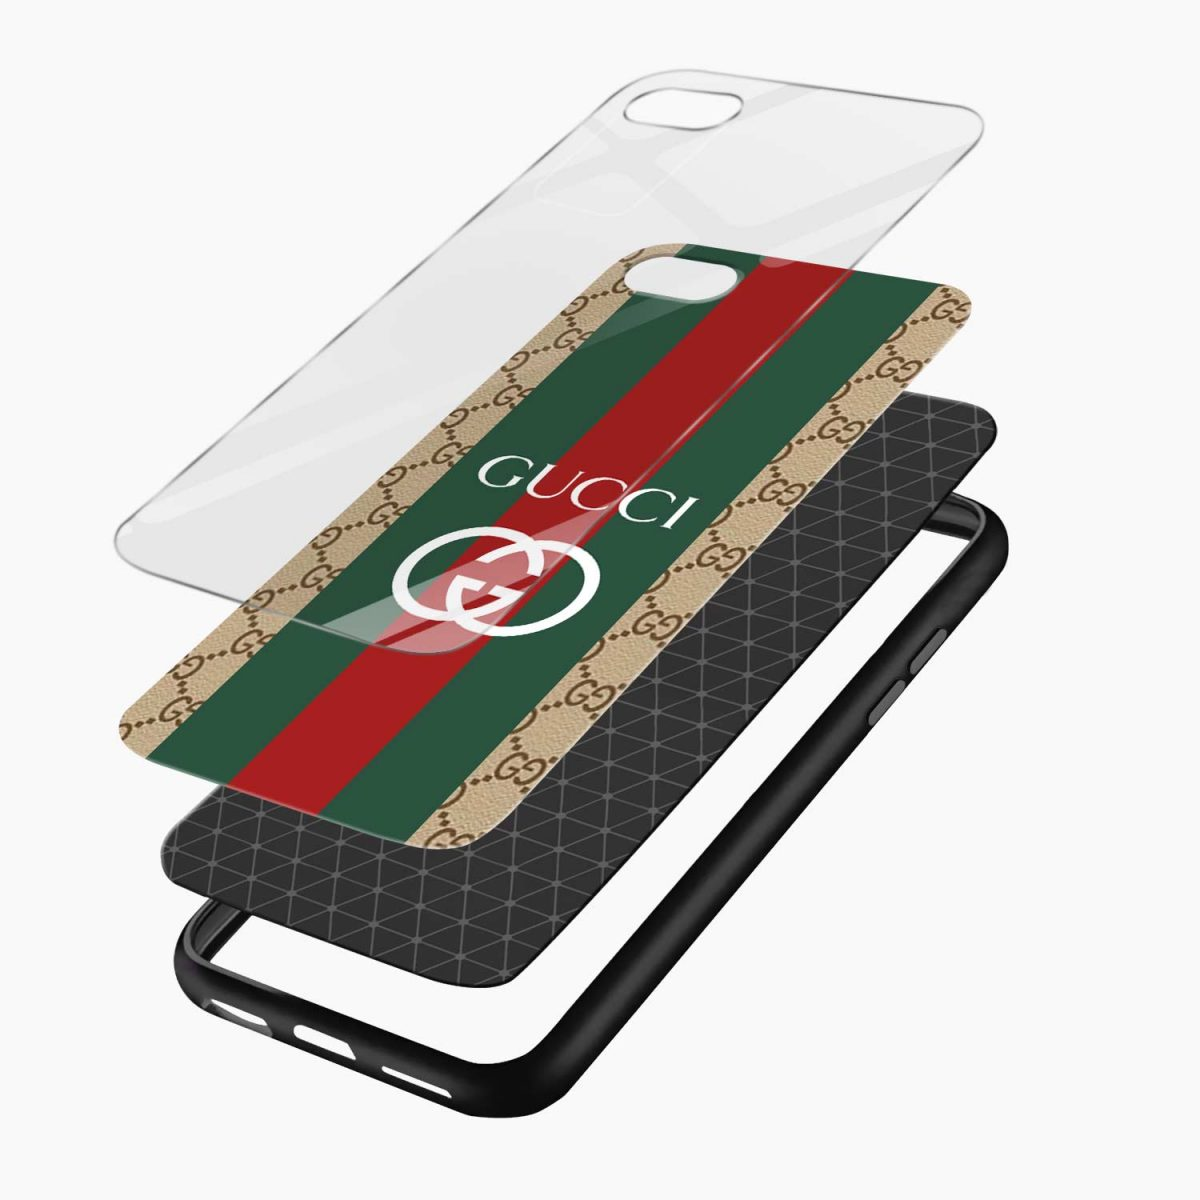 gucci strips pattern layers view apple iphone 6 7 8 se back cover